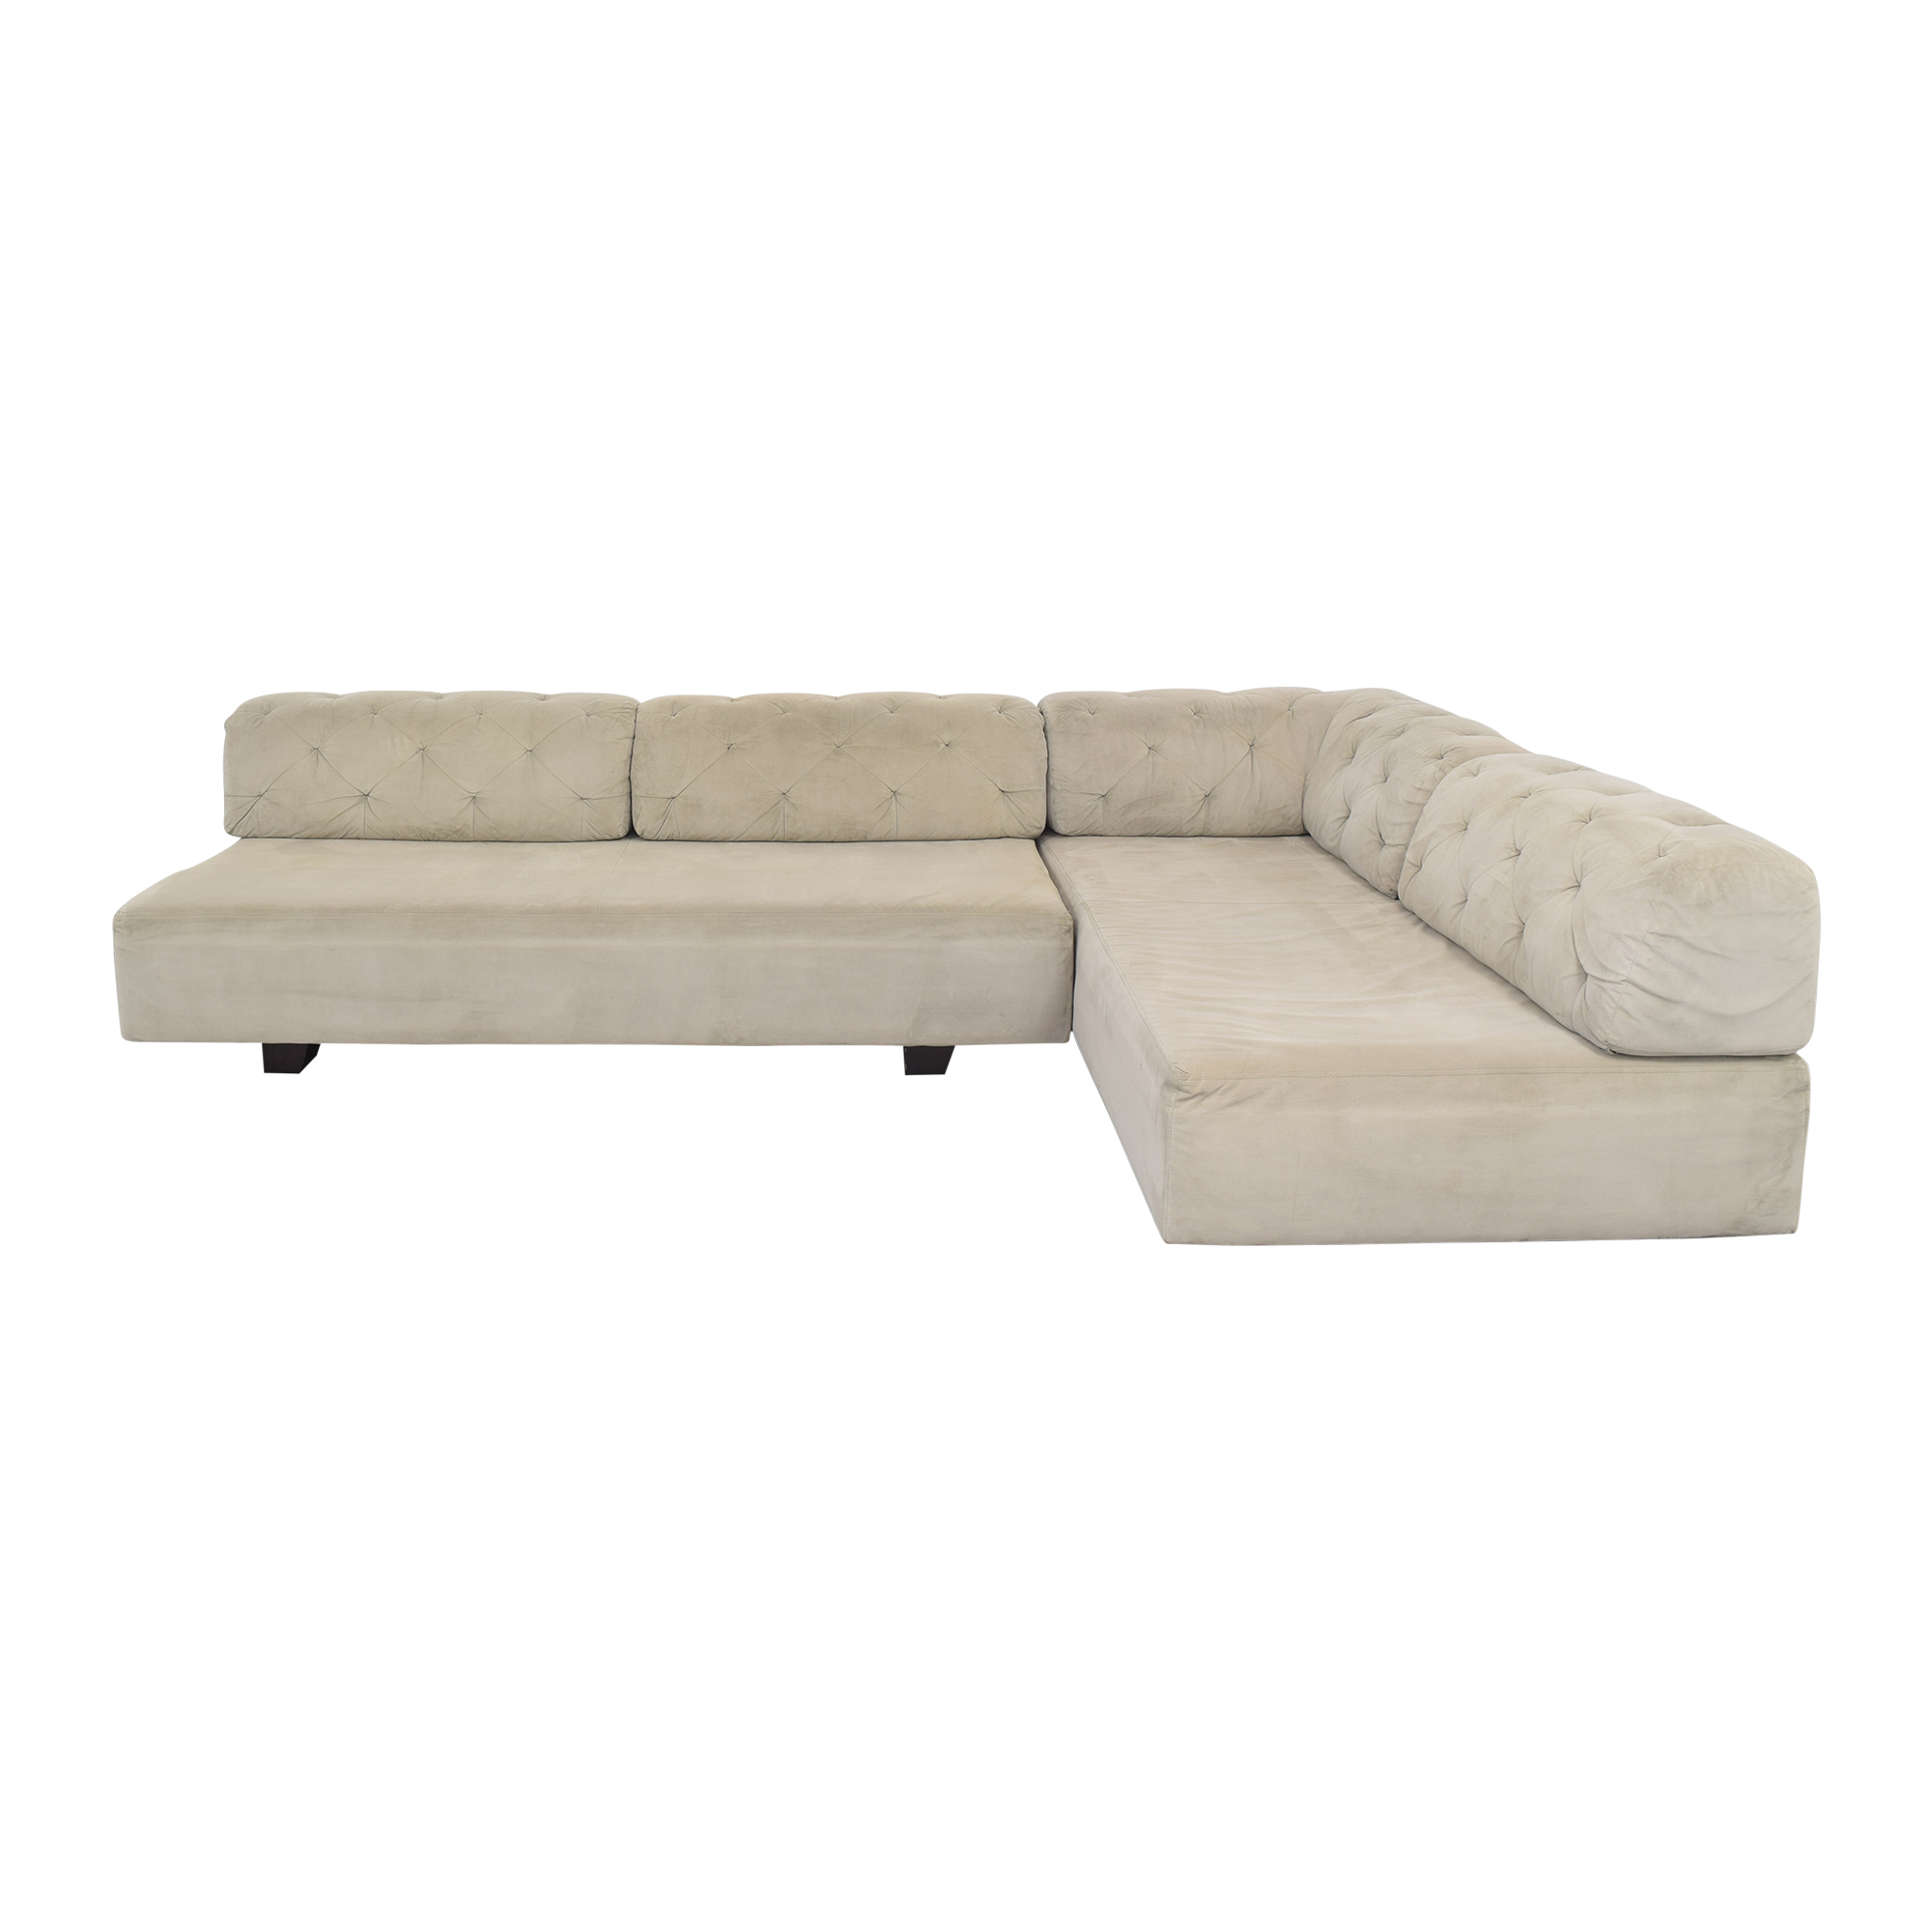 buy West Elm West Elm Tillary Tufted Sectional Sofa online